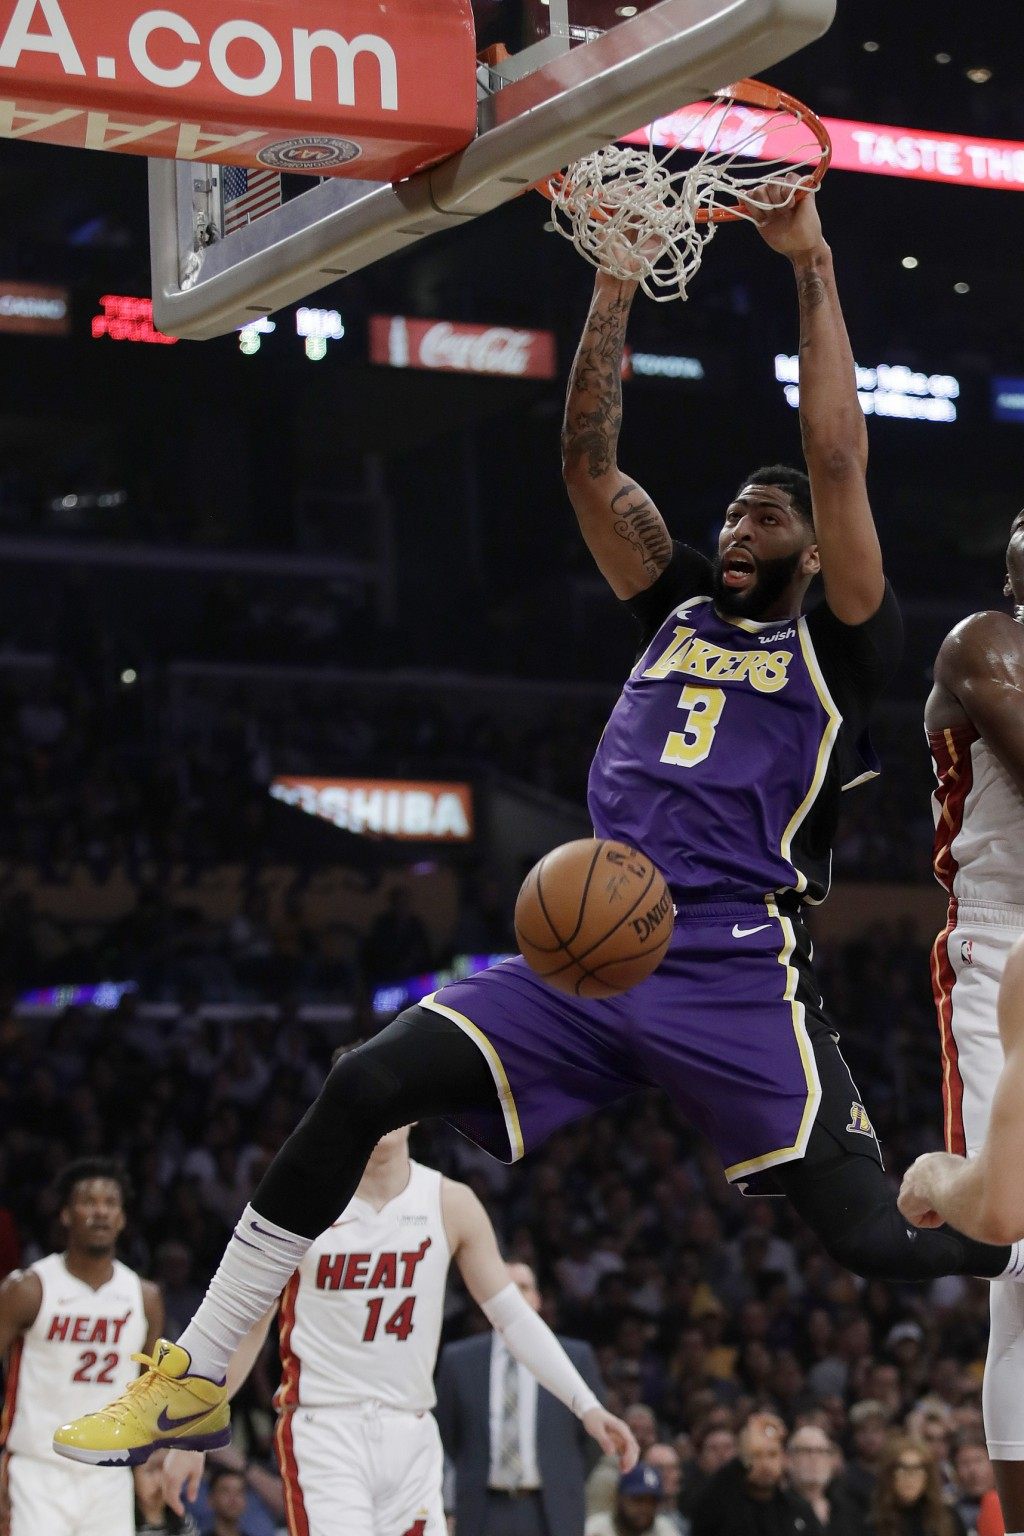 Los Angeles Lakers' Anthony Davis (3) dunks against the Miami Heat during the first half of an NBA basketball game Friday, Nov. 8, 2019, in Los Angele...